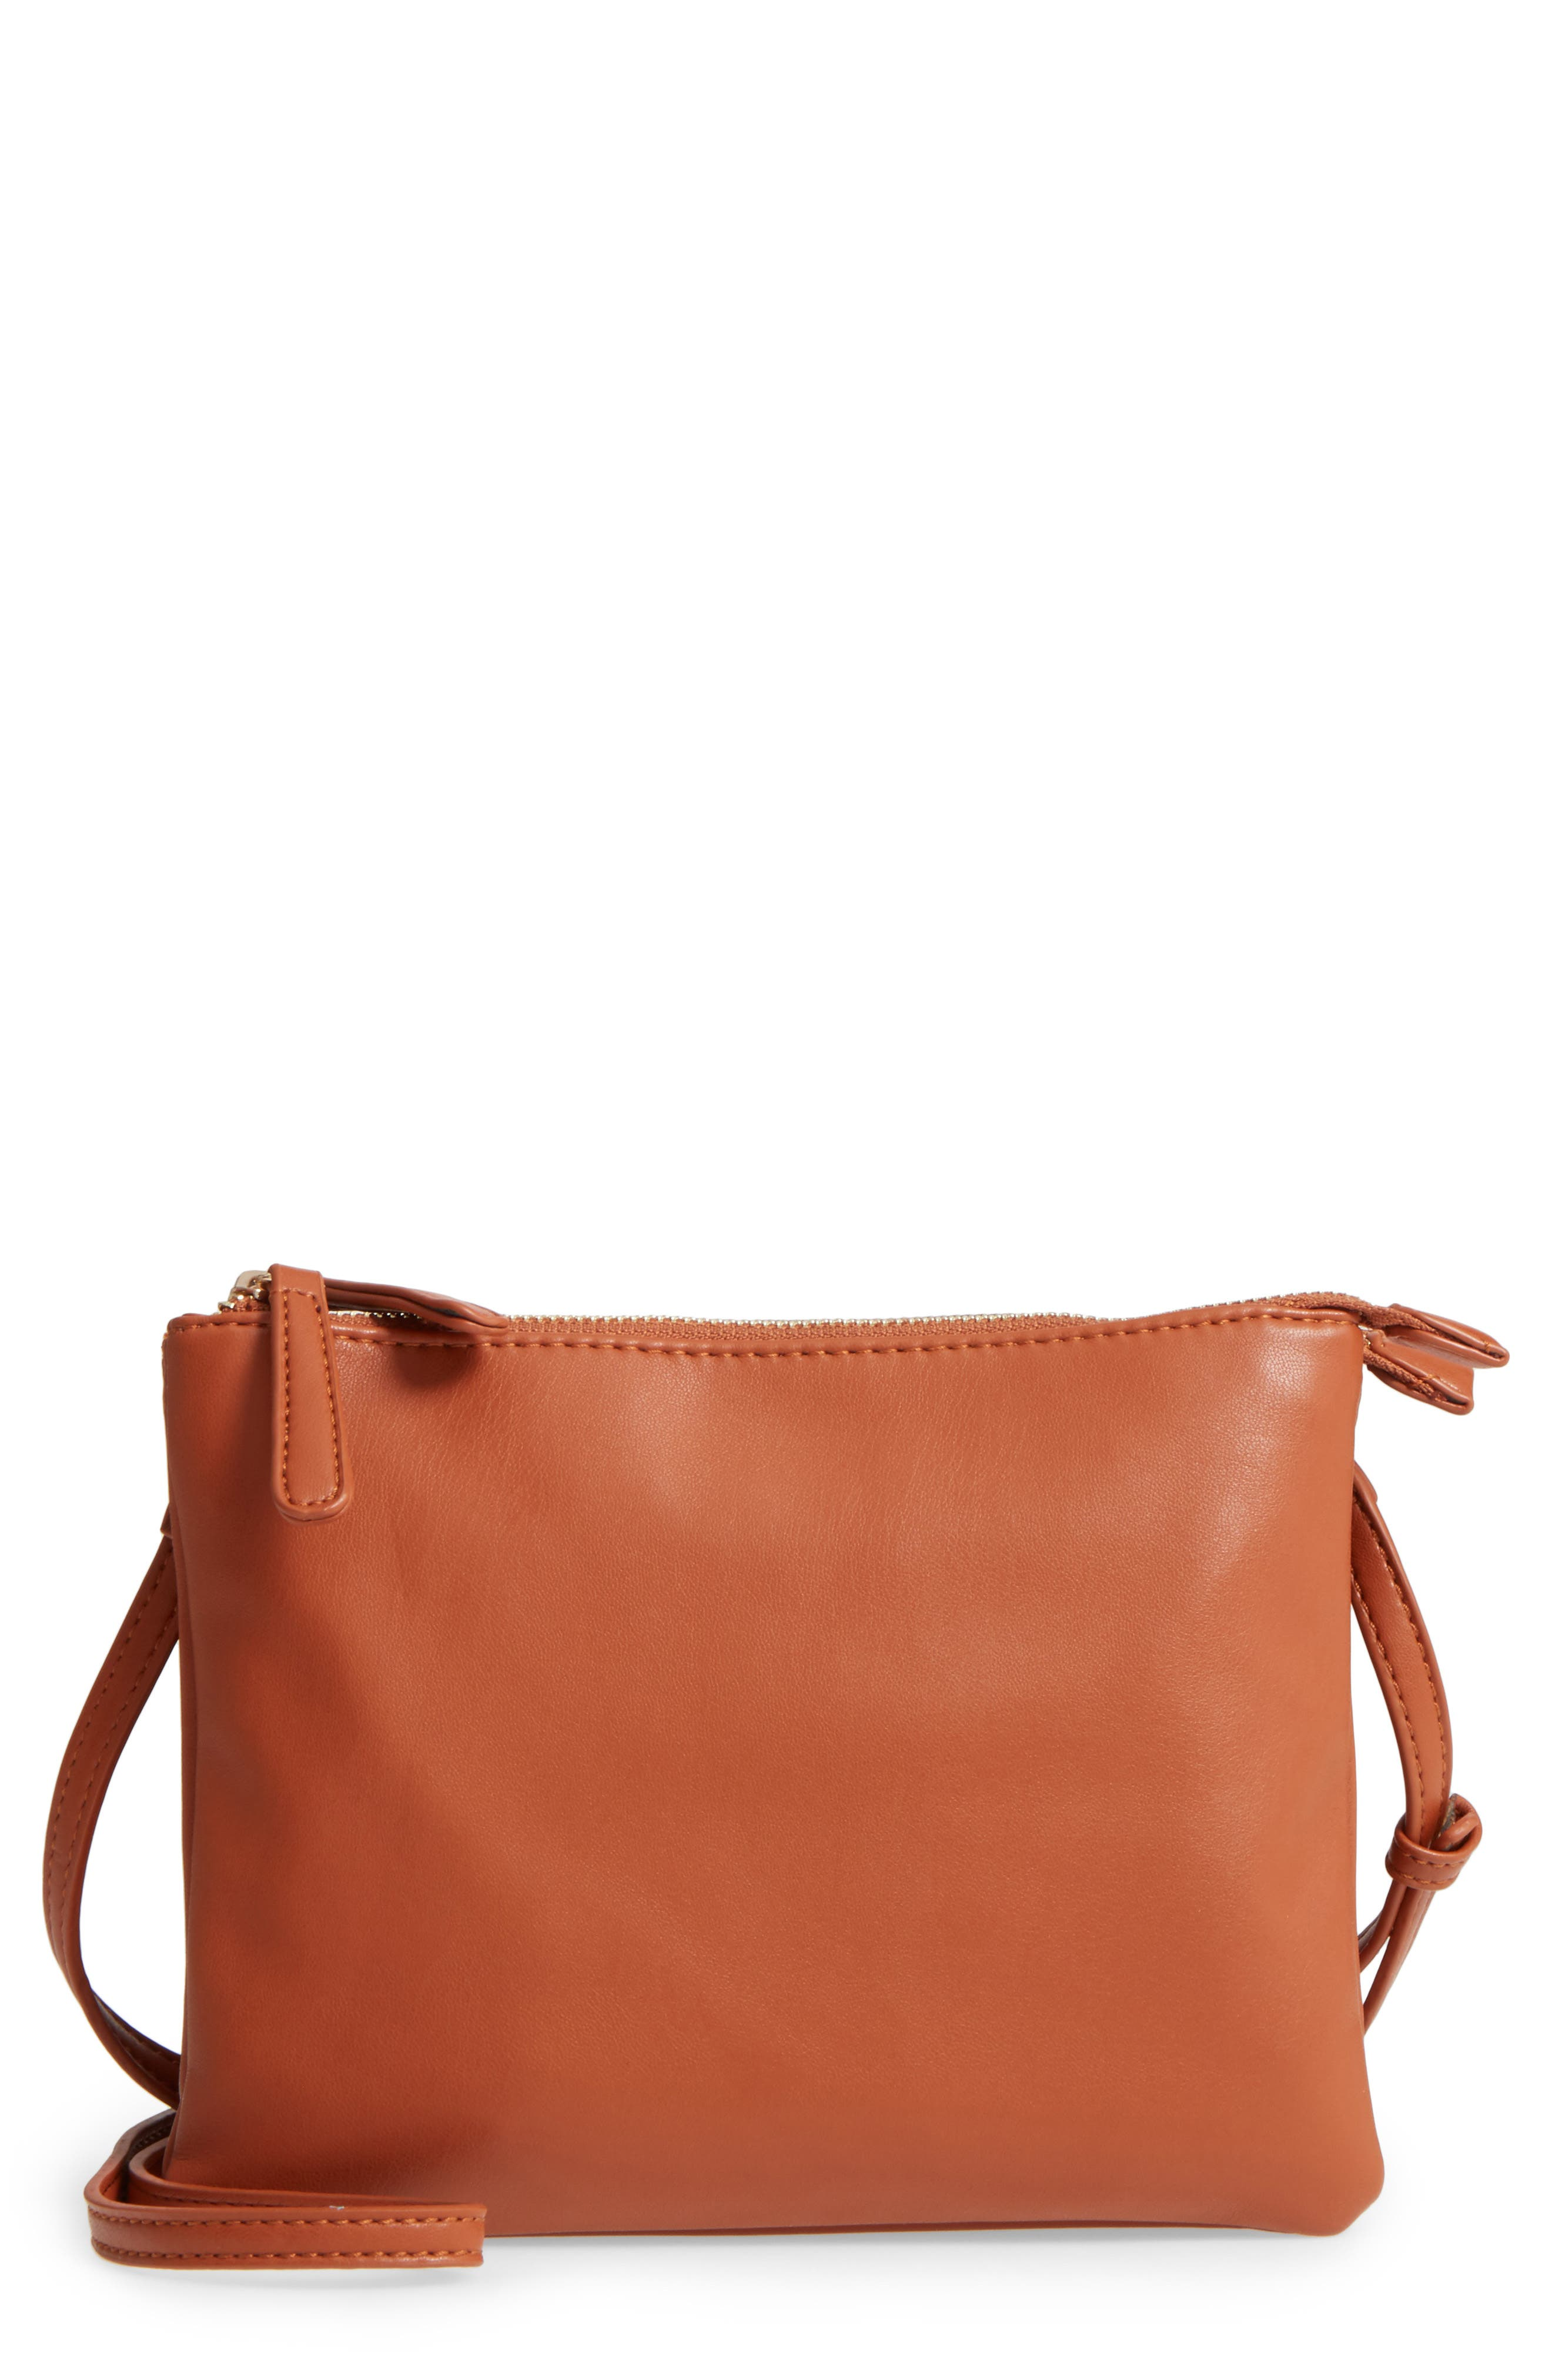 Main Image - Sole Society Madden Faux Leather Pouch Crossbody Bag